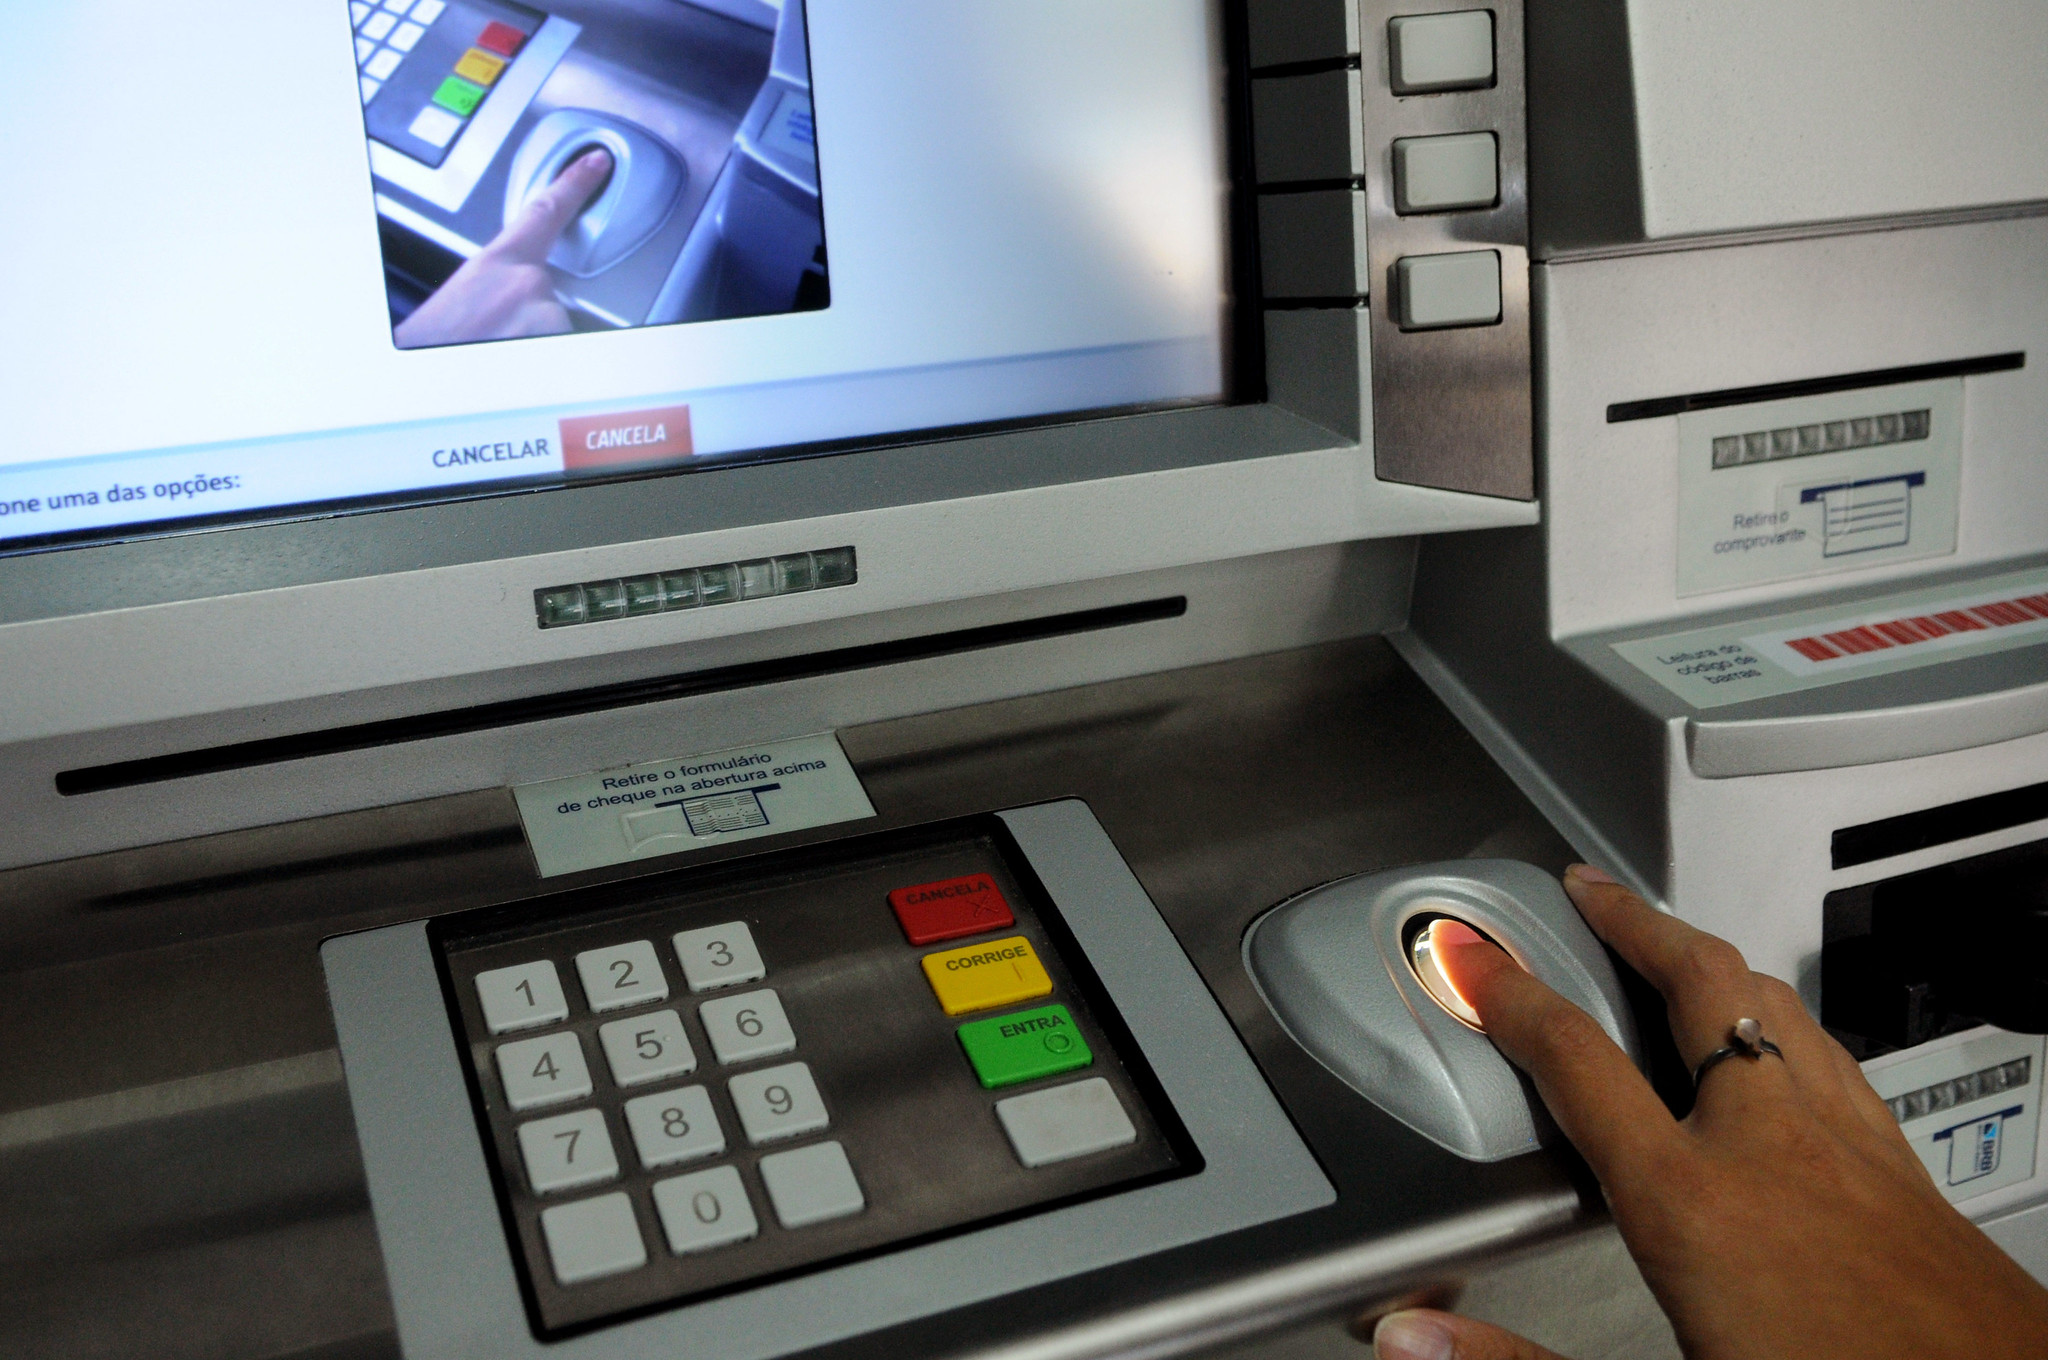 Verification can be carried out at any ATM in the bank where the beneficiary receives payment.  (Source: BRB/Tony Wiston/Reproduction)